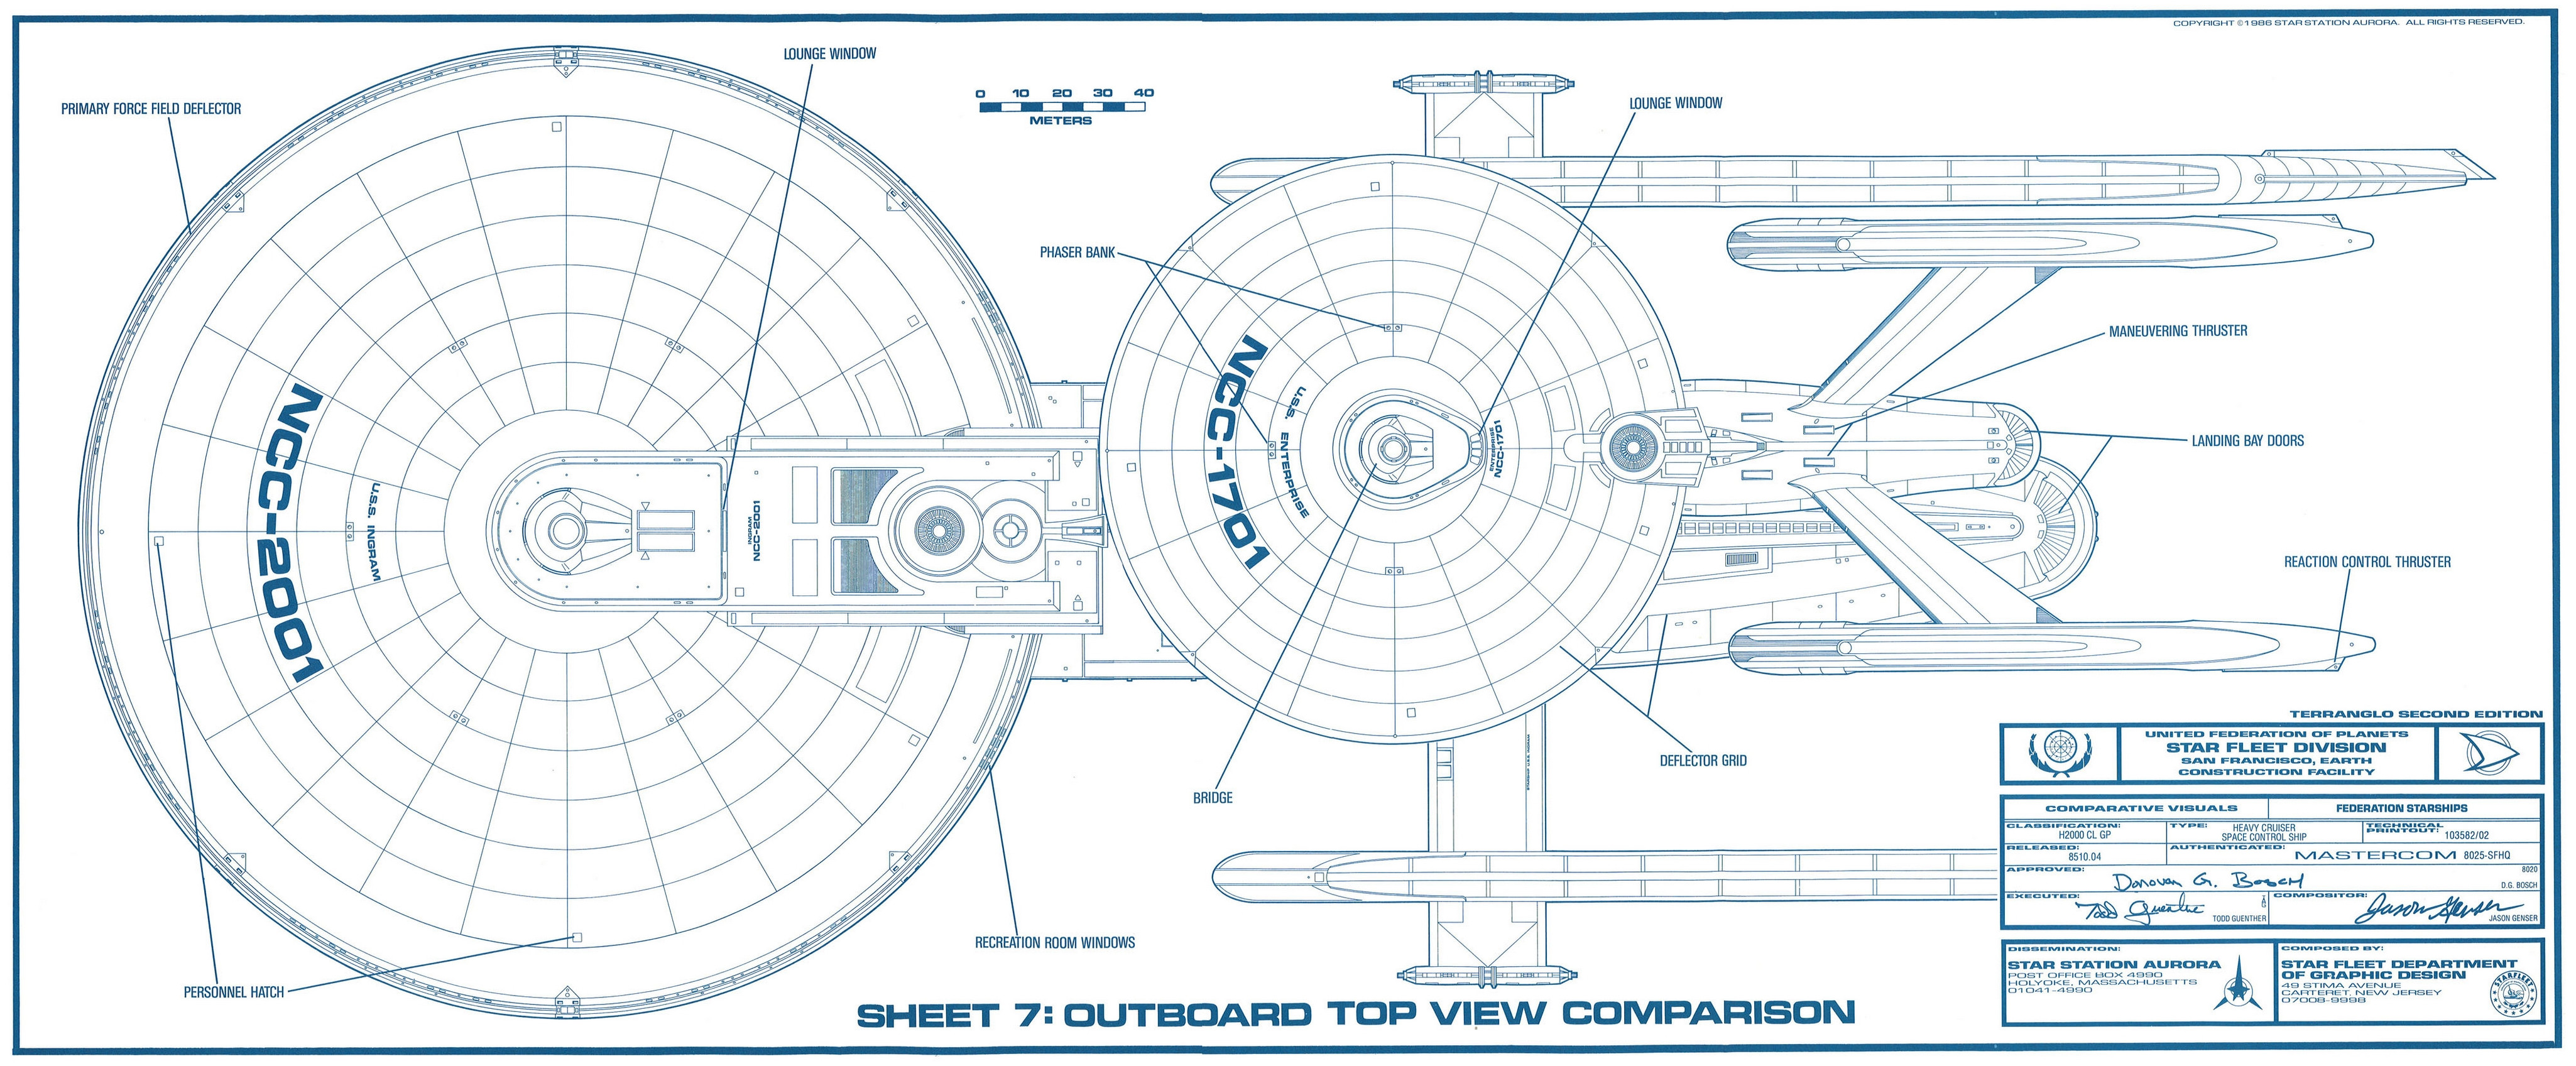 High Quality Excelsior Class And Constitution Class Blueprints